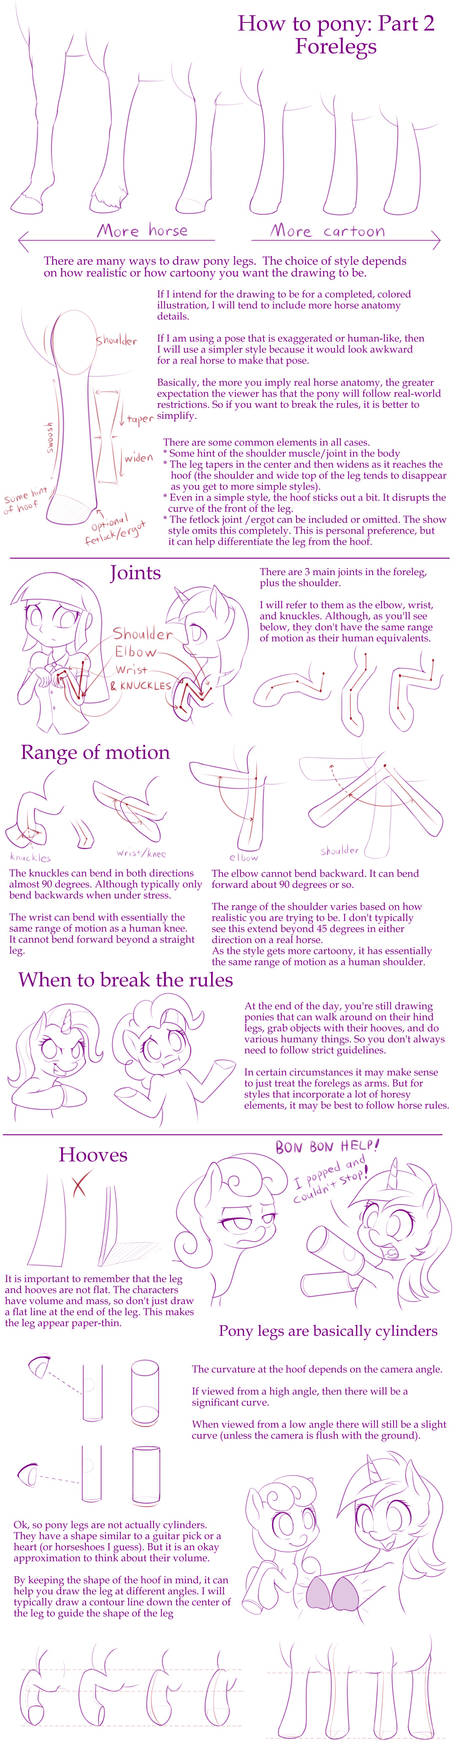 How to Pony: Part 2 - Forelegs